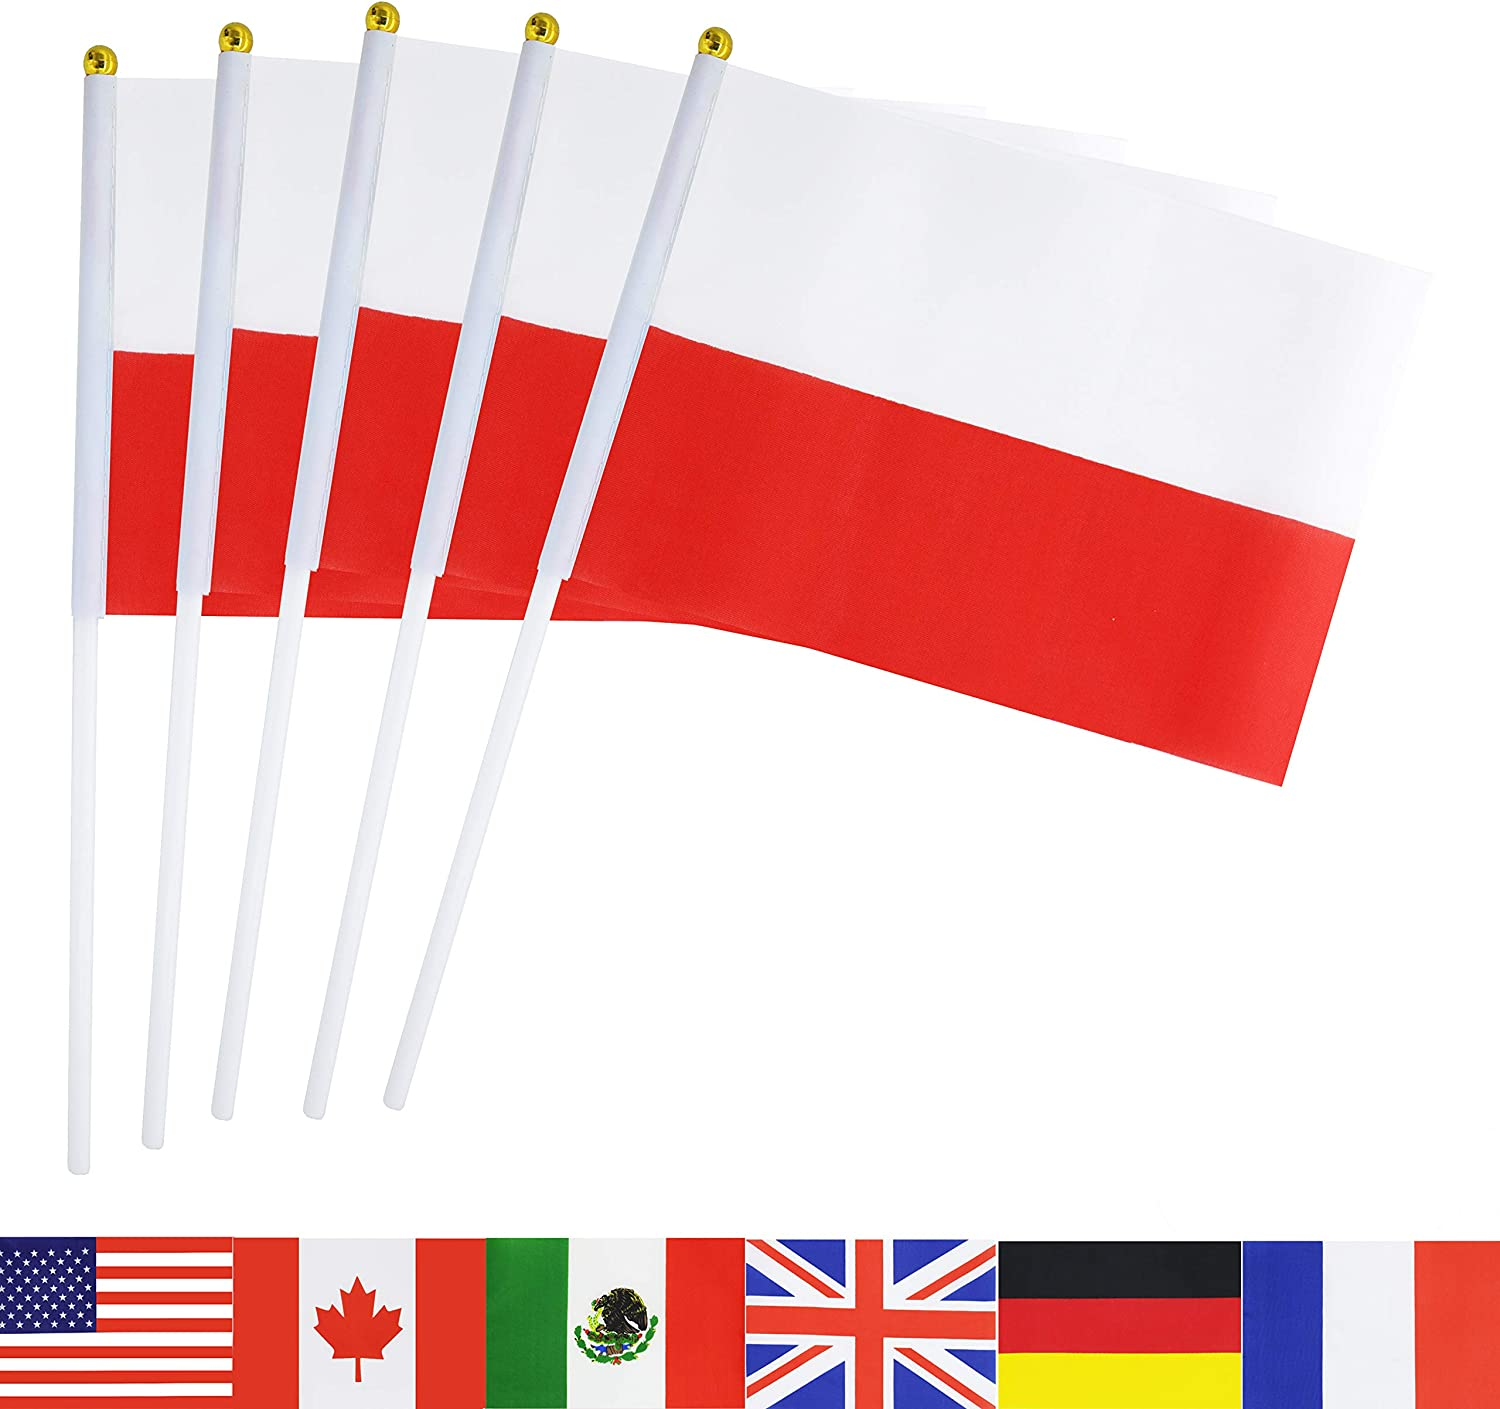 TSMD Poland Stick Flag, 50 Pack Hand Held Small Polish National Flags On Stick,International World Country Stick Flags Banners,Party Decorations for World Cup,Sports Clubs,Festival Events Celebration